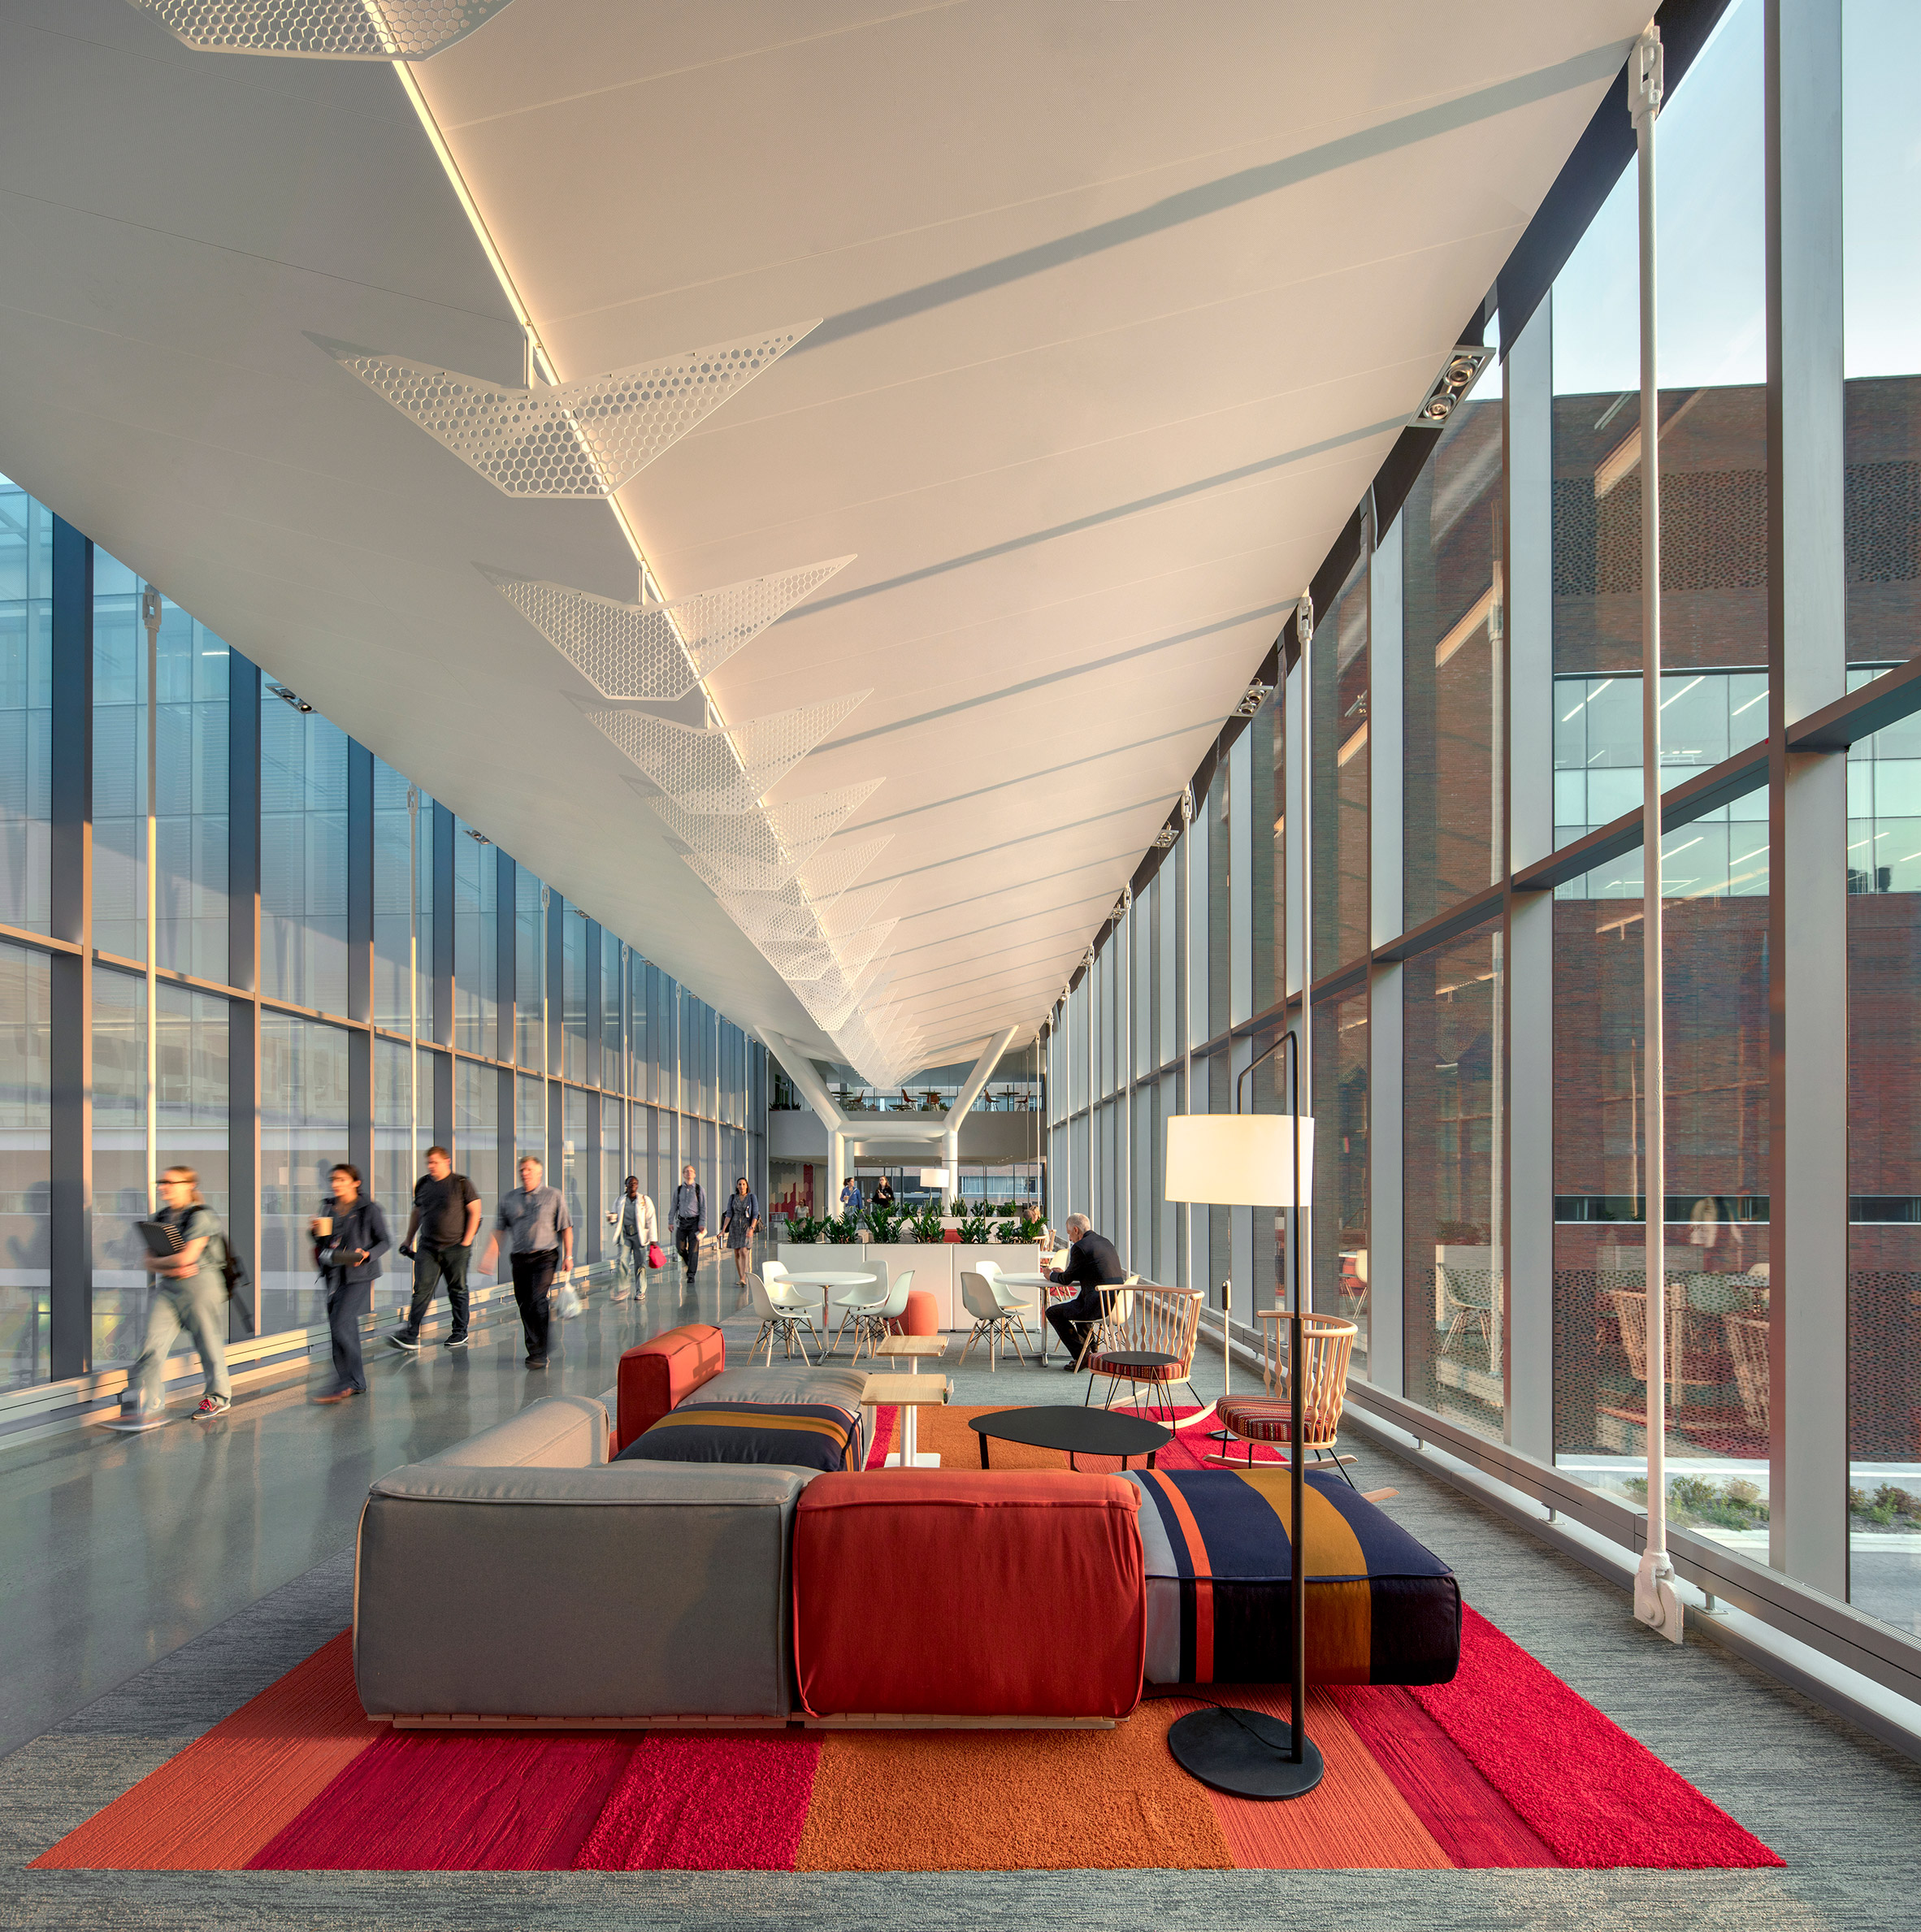 medical-center-university-of-kansas-co-architects-architecture-kansas-city-usa_dezeen_2364_col_11-852x857.jpg